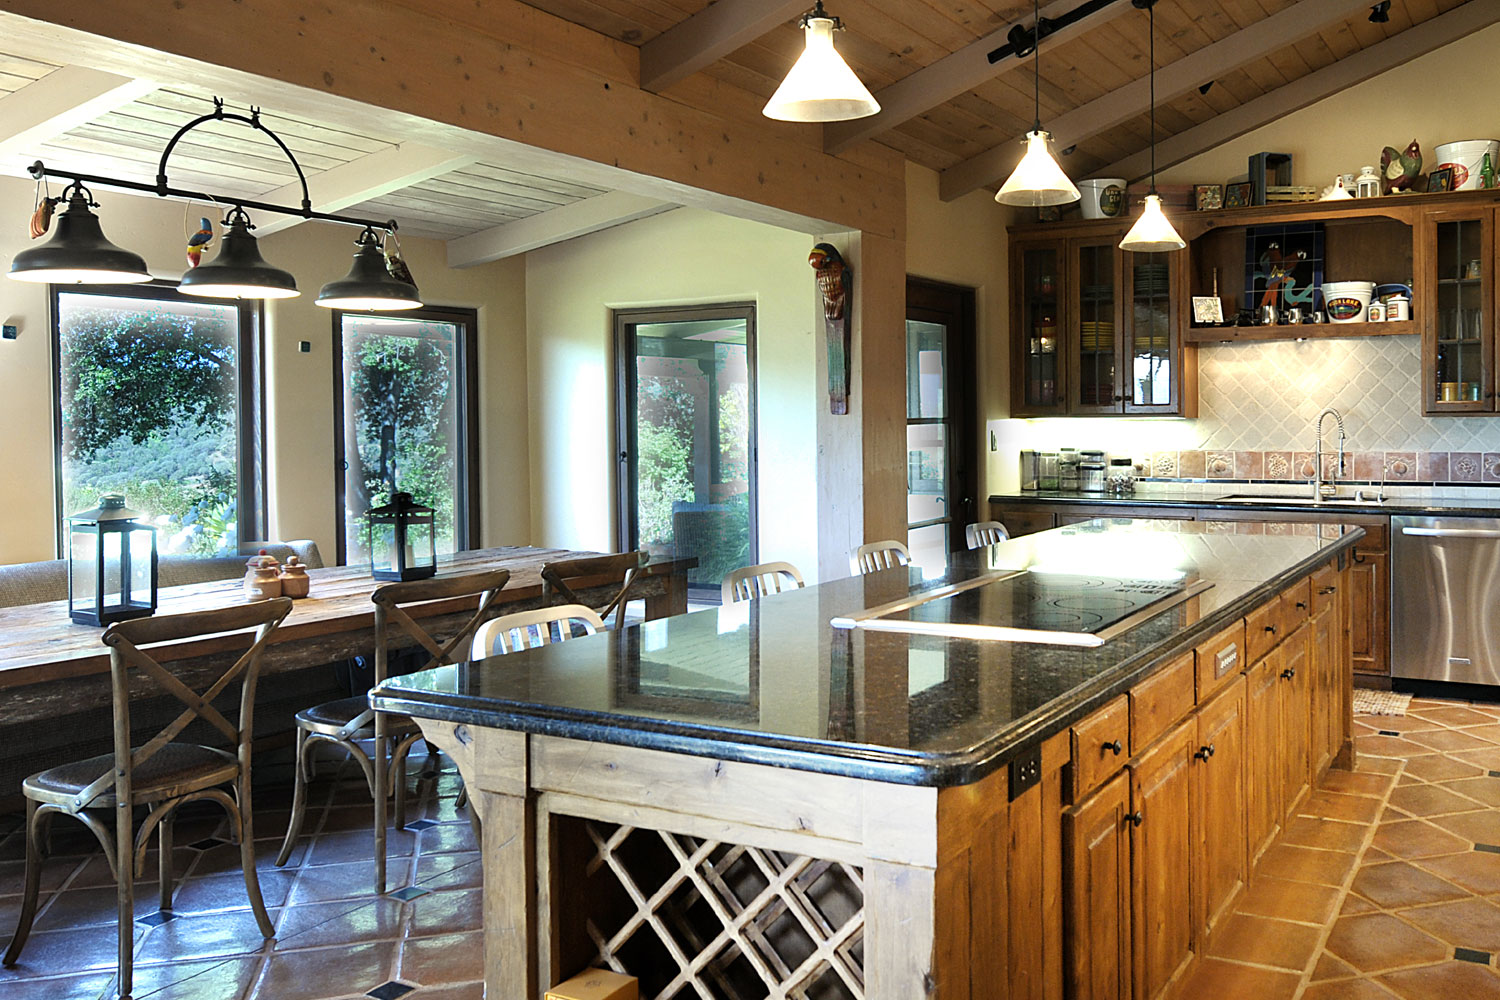 A modernized kitchen is notable for its openness and natural lighting.